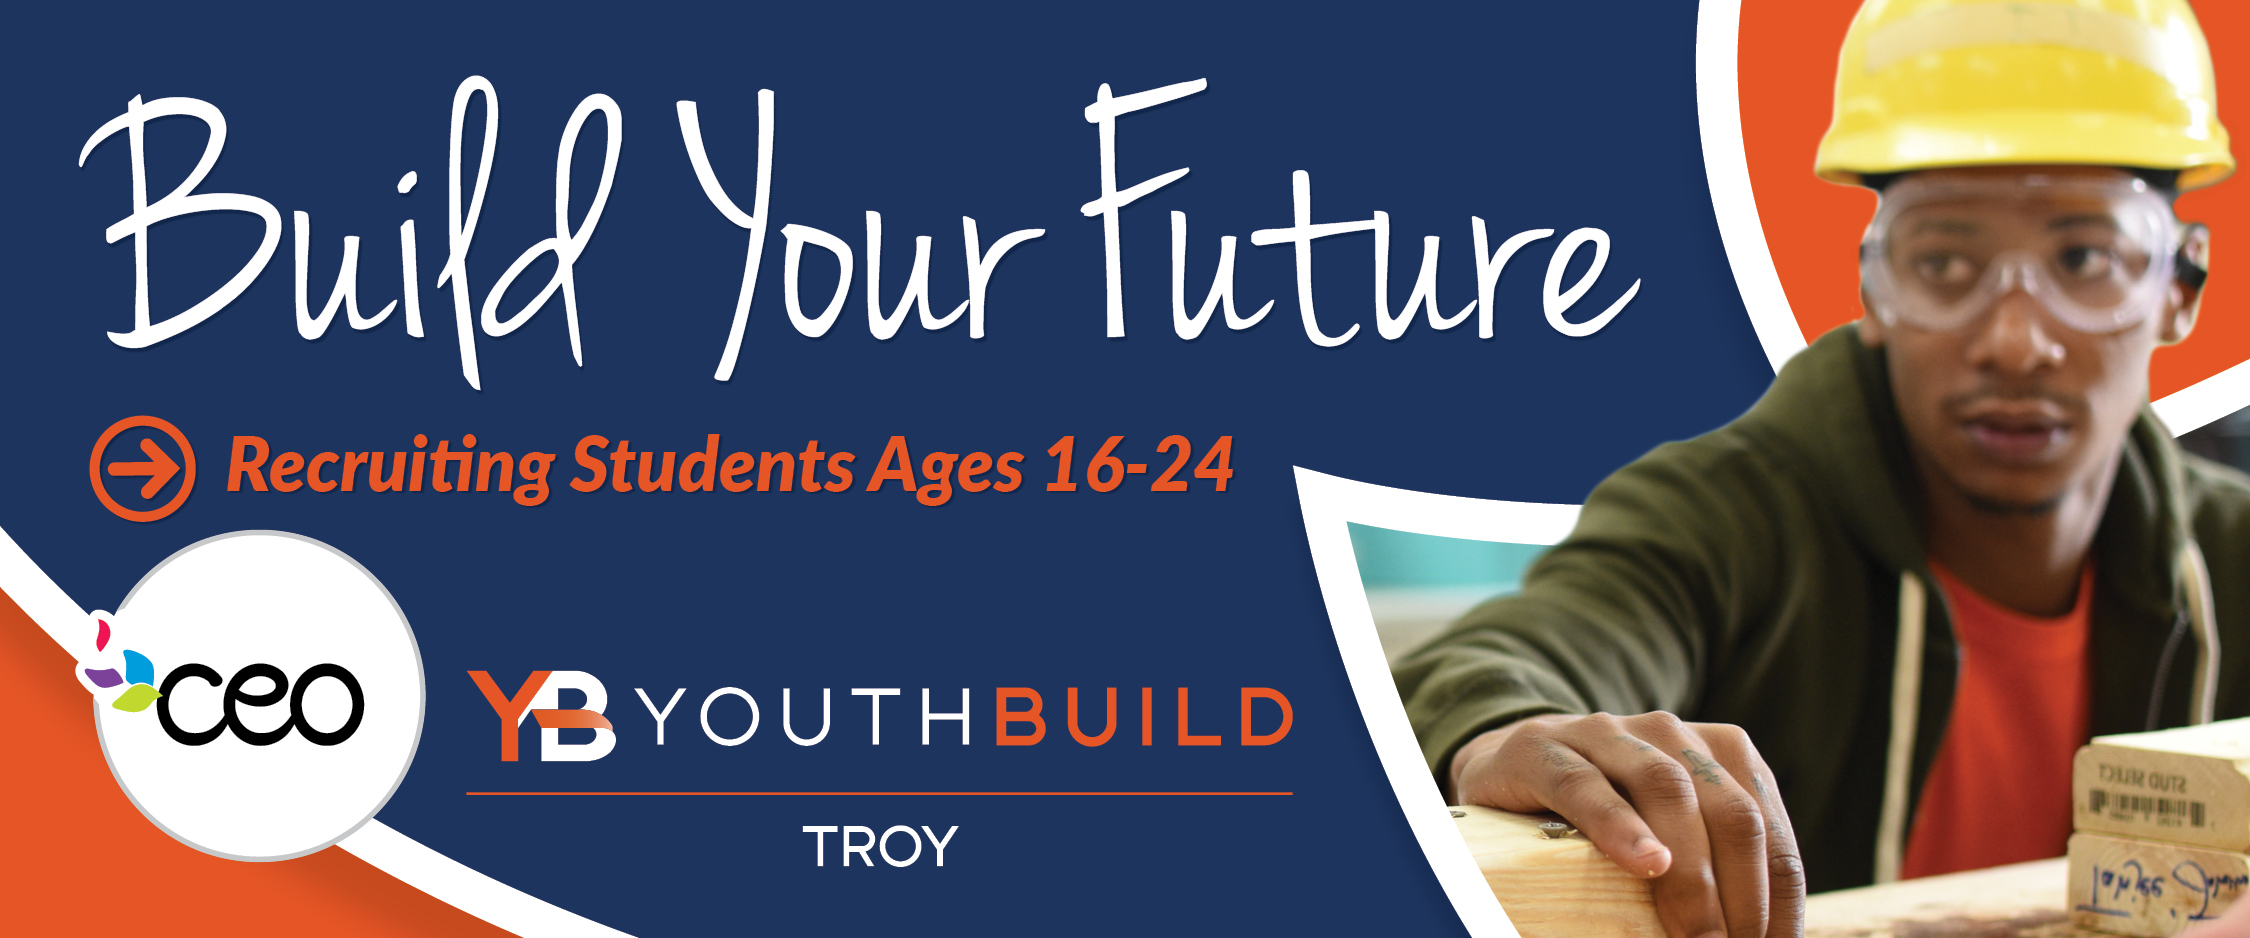 Build your Future: Recruiting Students Ages 16-24 - YouthBuild Troy